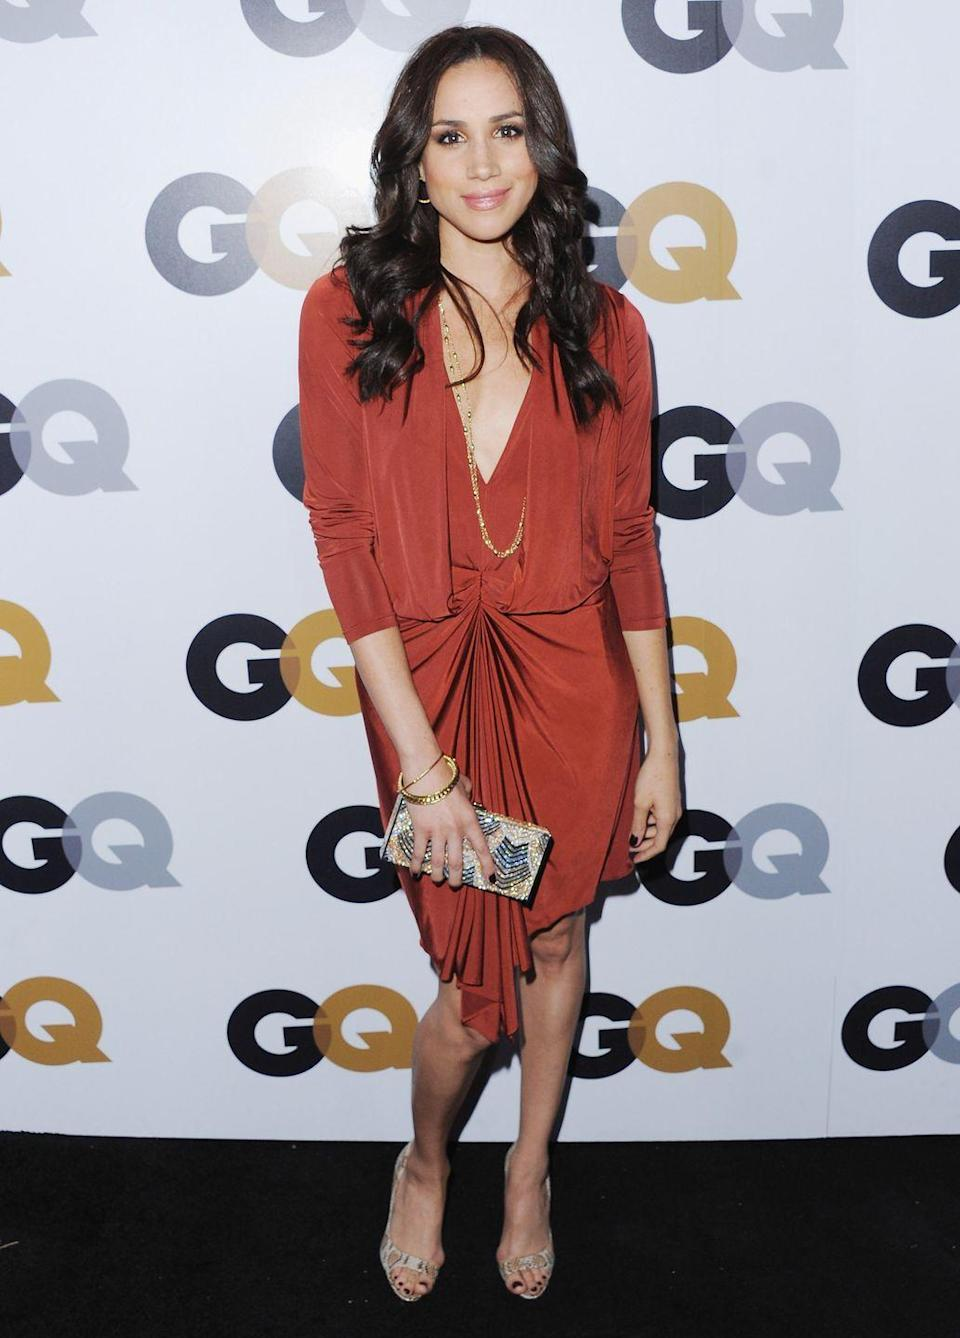 <p>Meghan Markle arrives at GQ Men Of The Year Party at Chateau Marmont, November 2012</p>